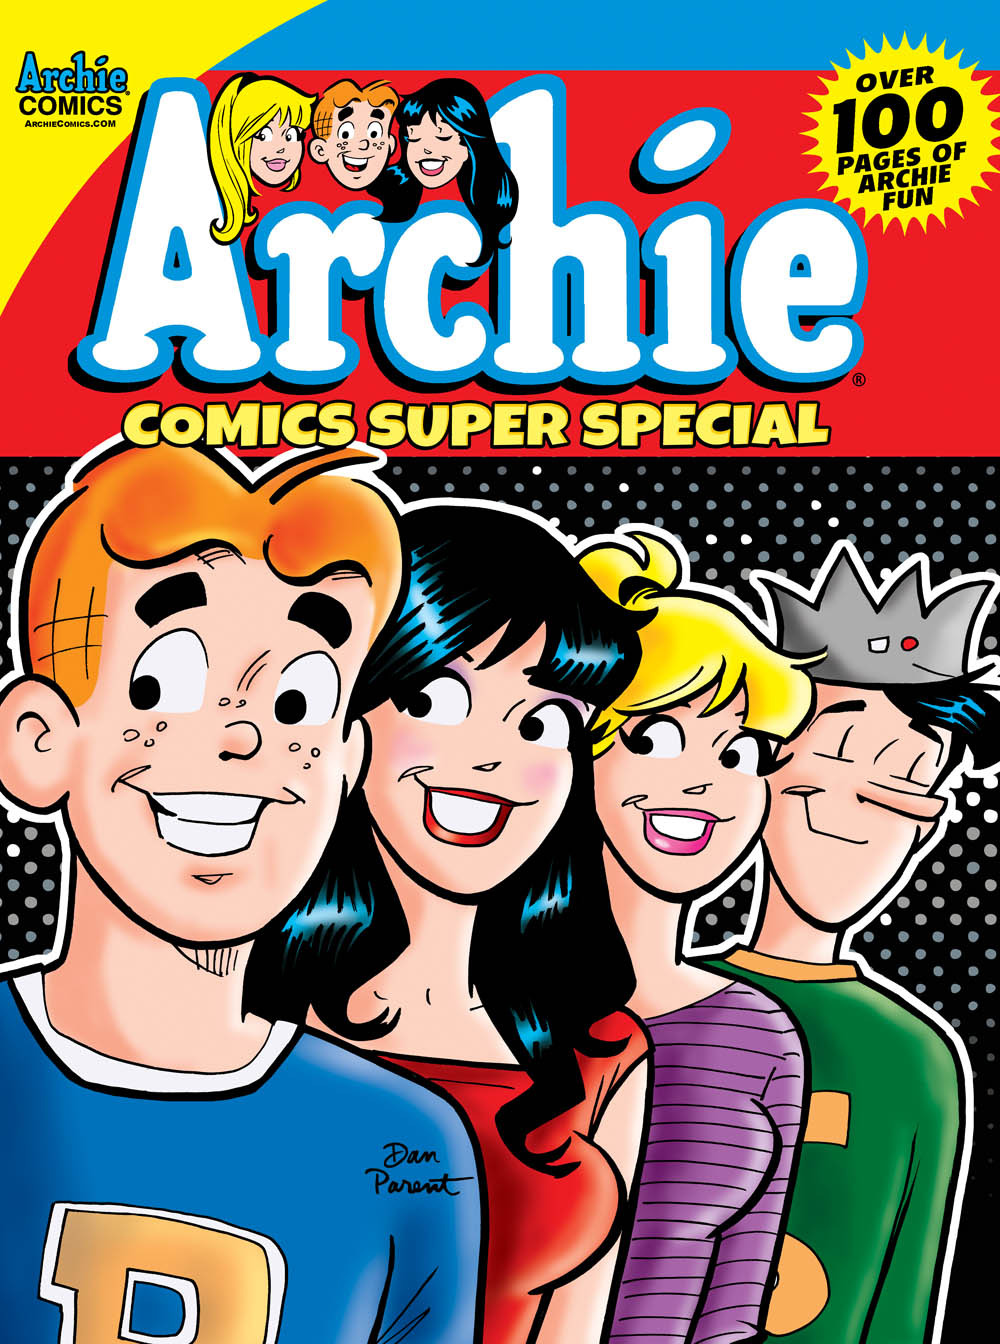 Gotta Love Archie #fbf #FlashbackFriday